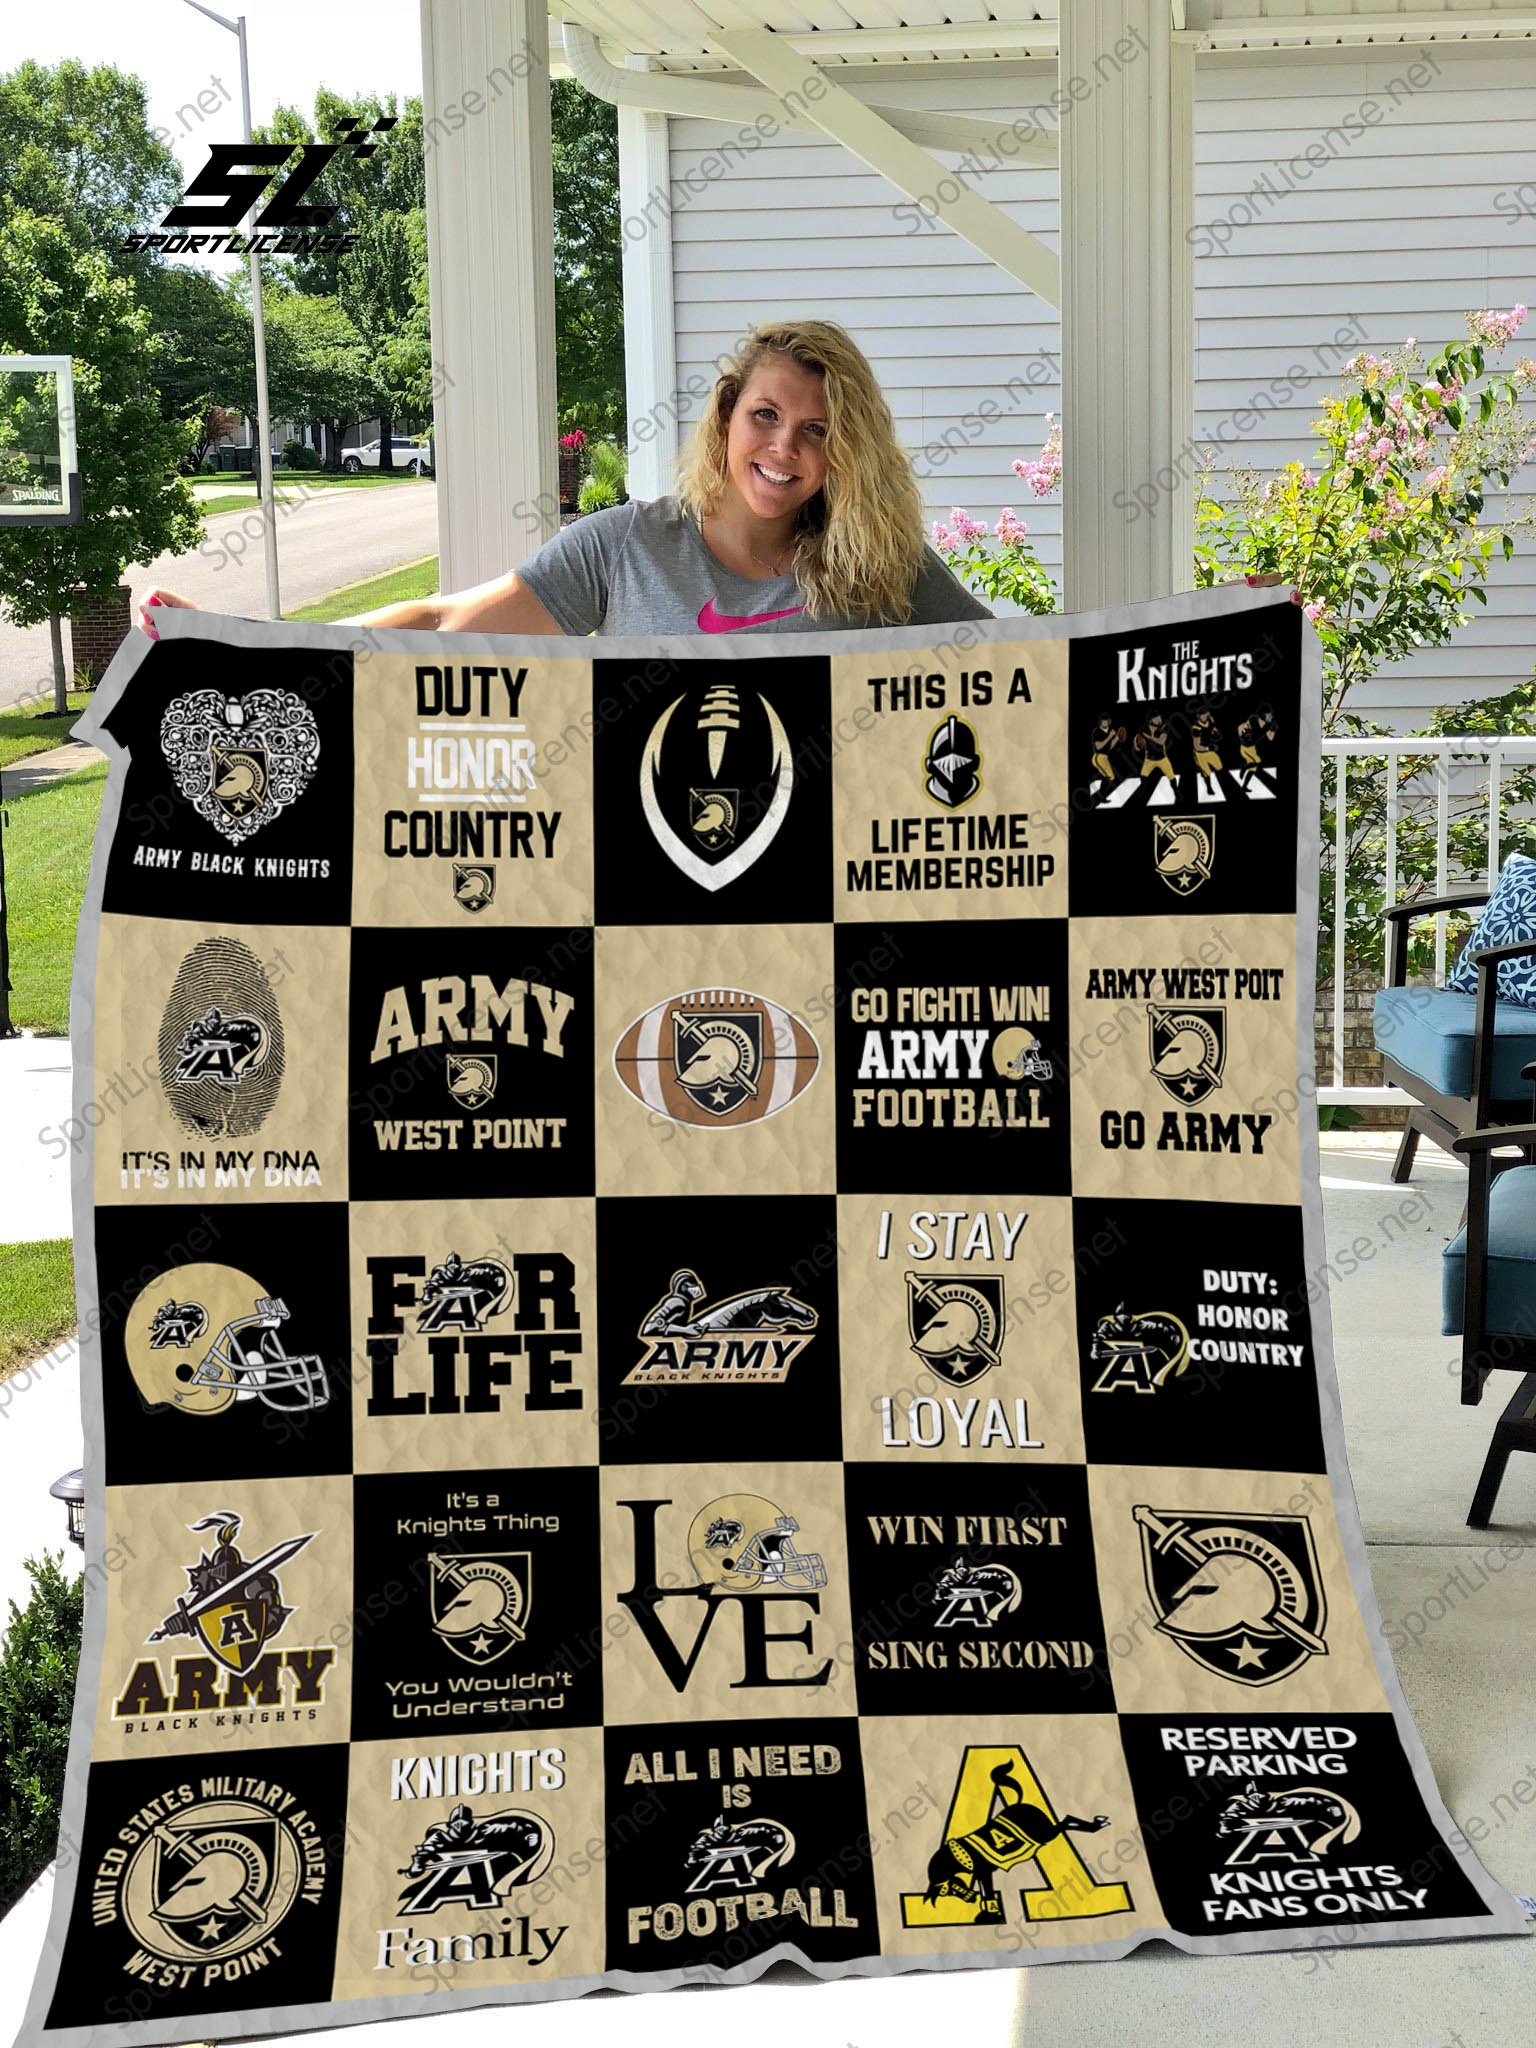 Army west point black knights quilt 2